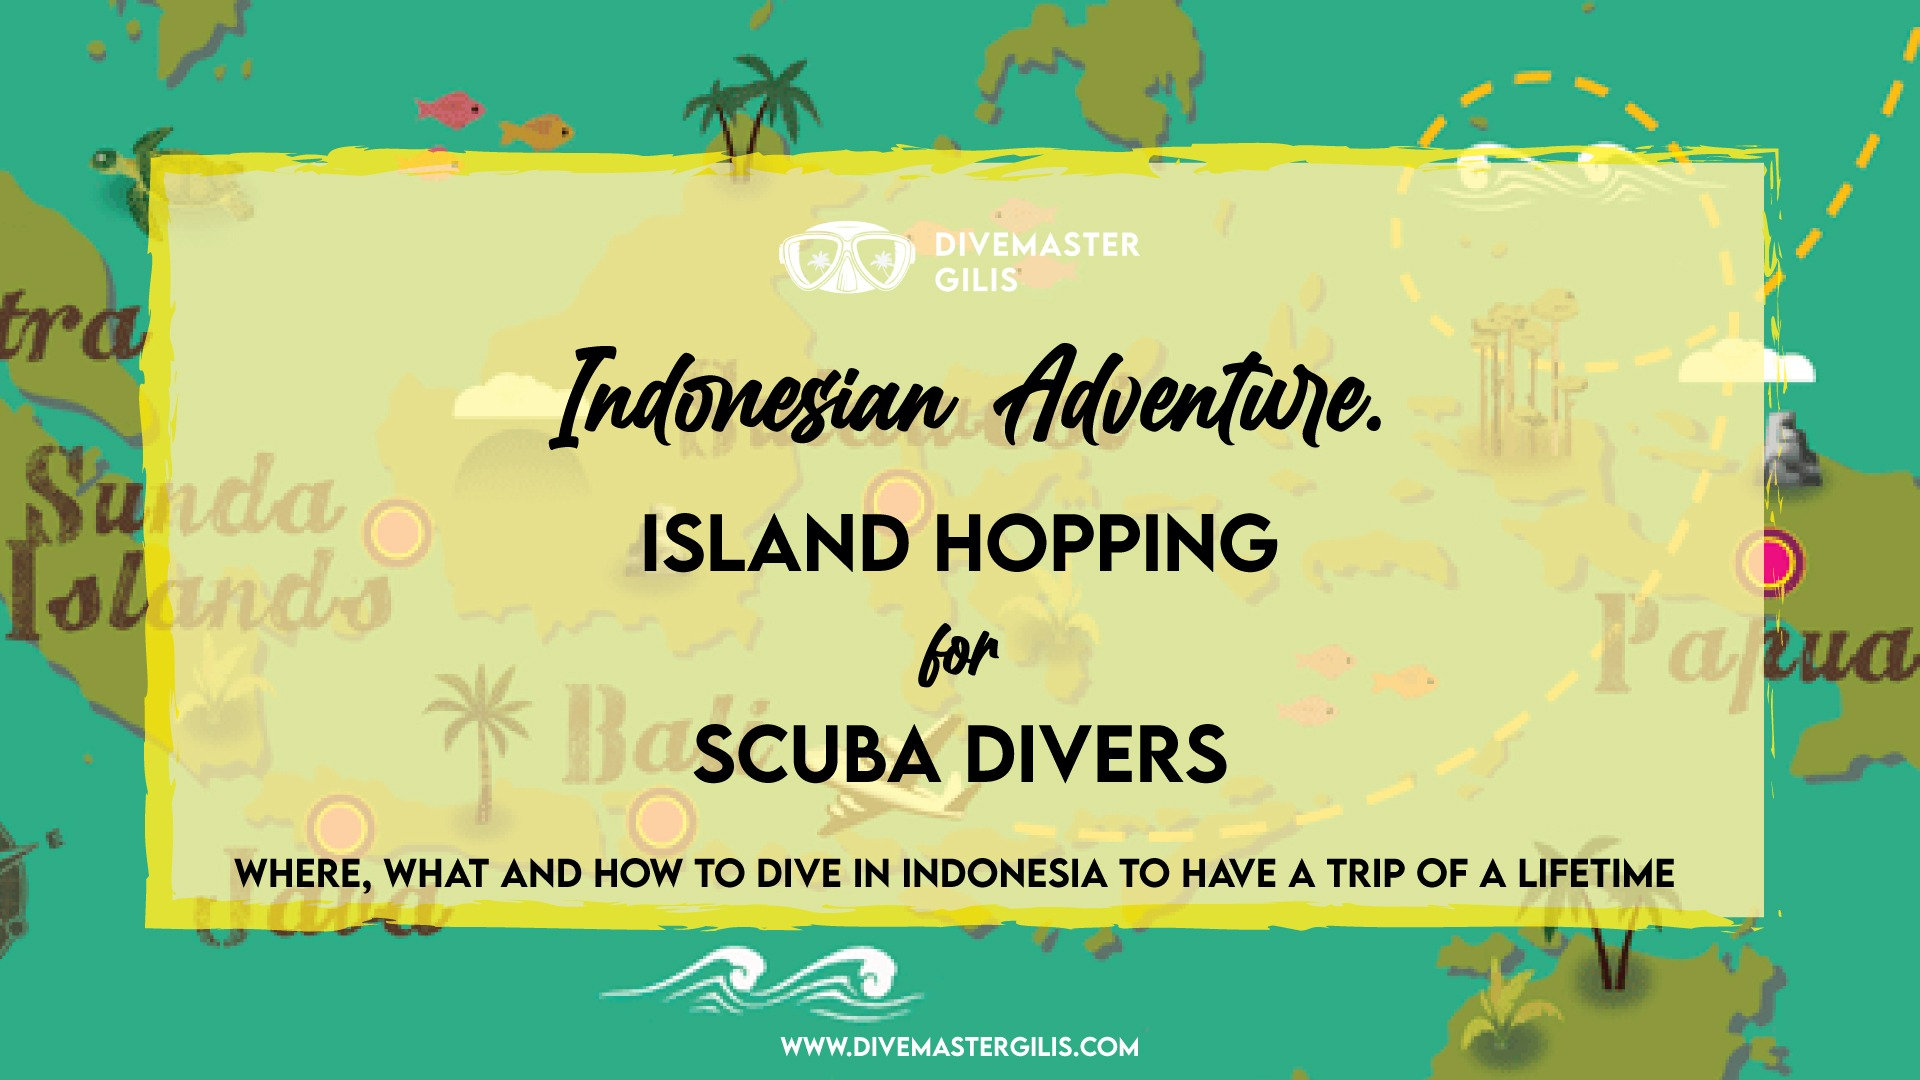 Indonesian island hopping for scuba divers